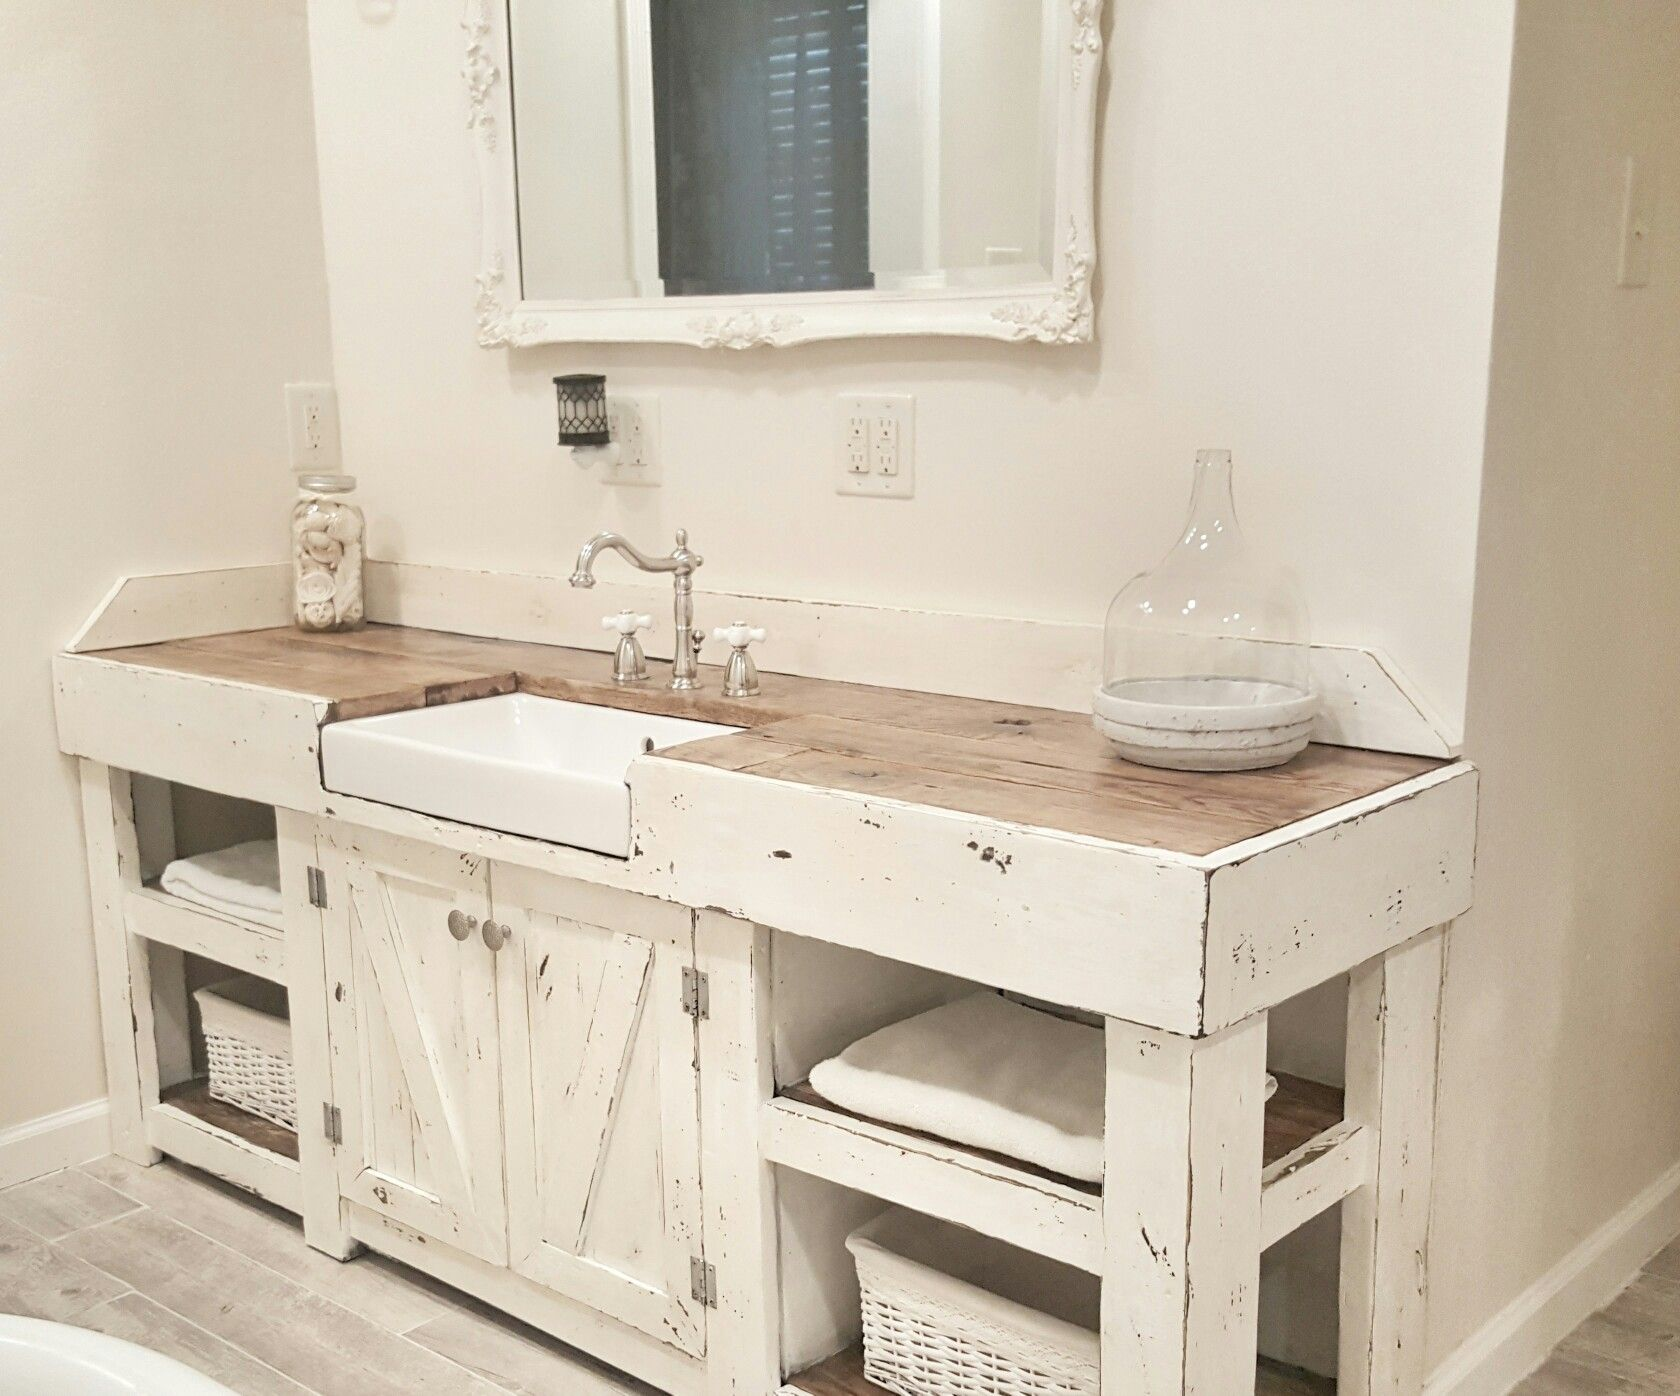 Bathroom sinks with options for everyone - 23 Best Bathroom Vanity Farmhouse Ideas To Inspire You Dlingoo